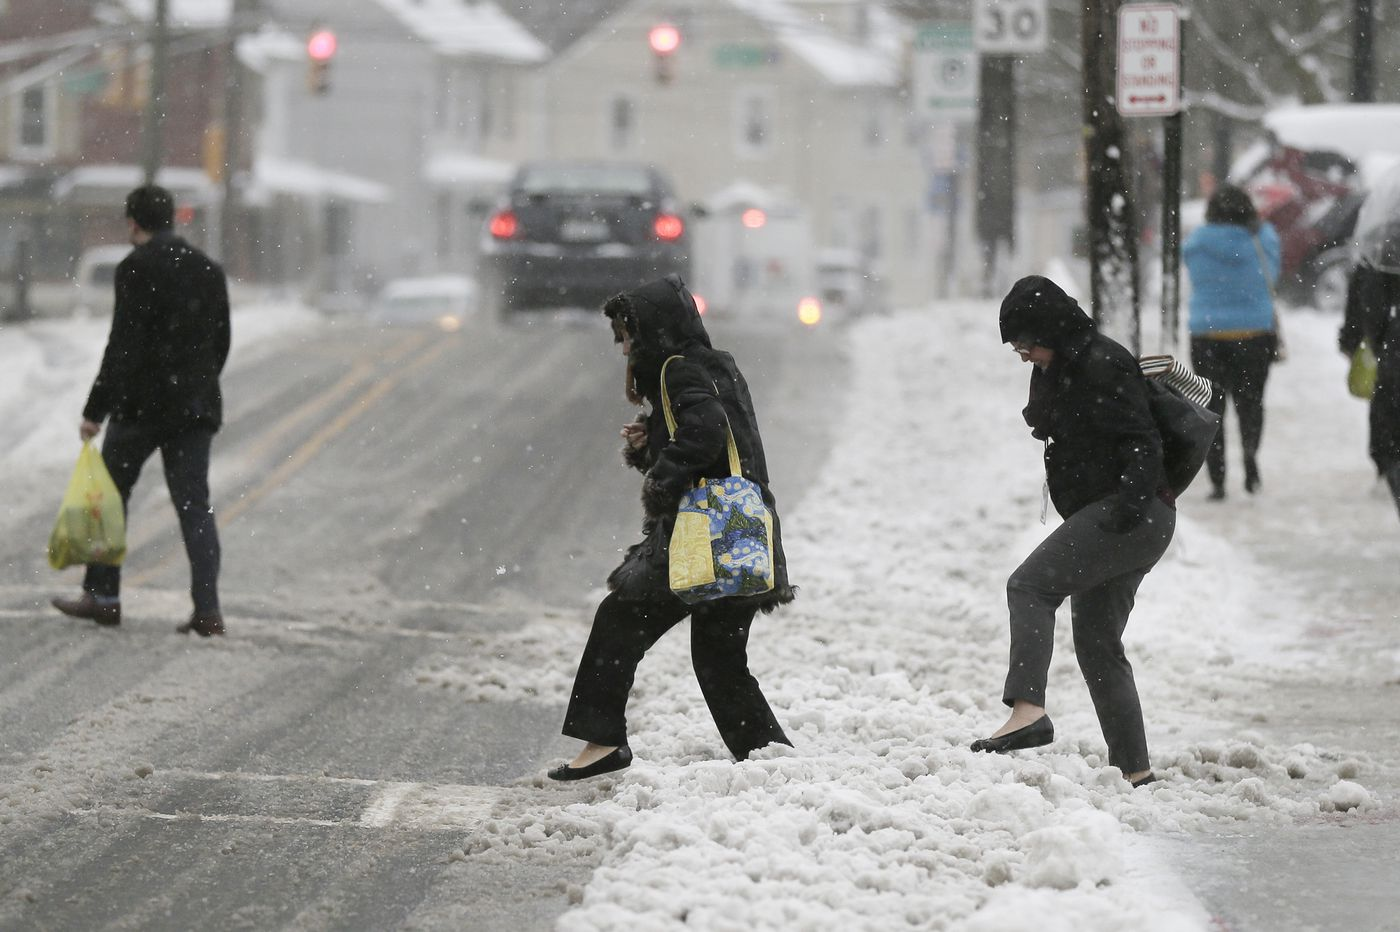 Surprise snowstorm truly a rarity. Nothing like it in 65 years in Philly.